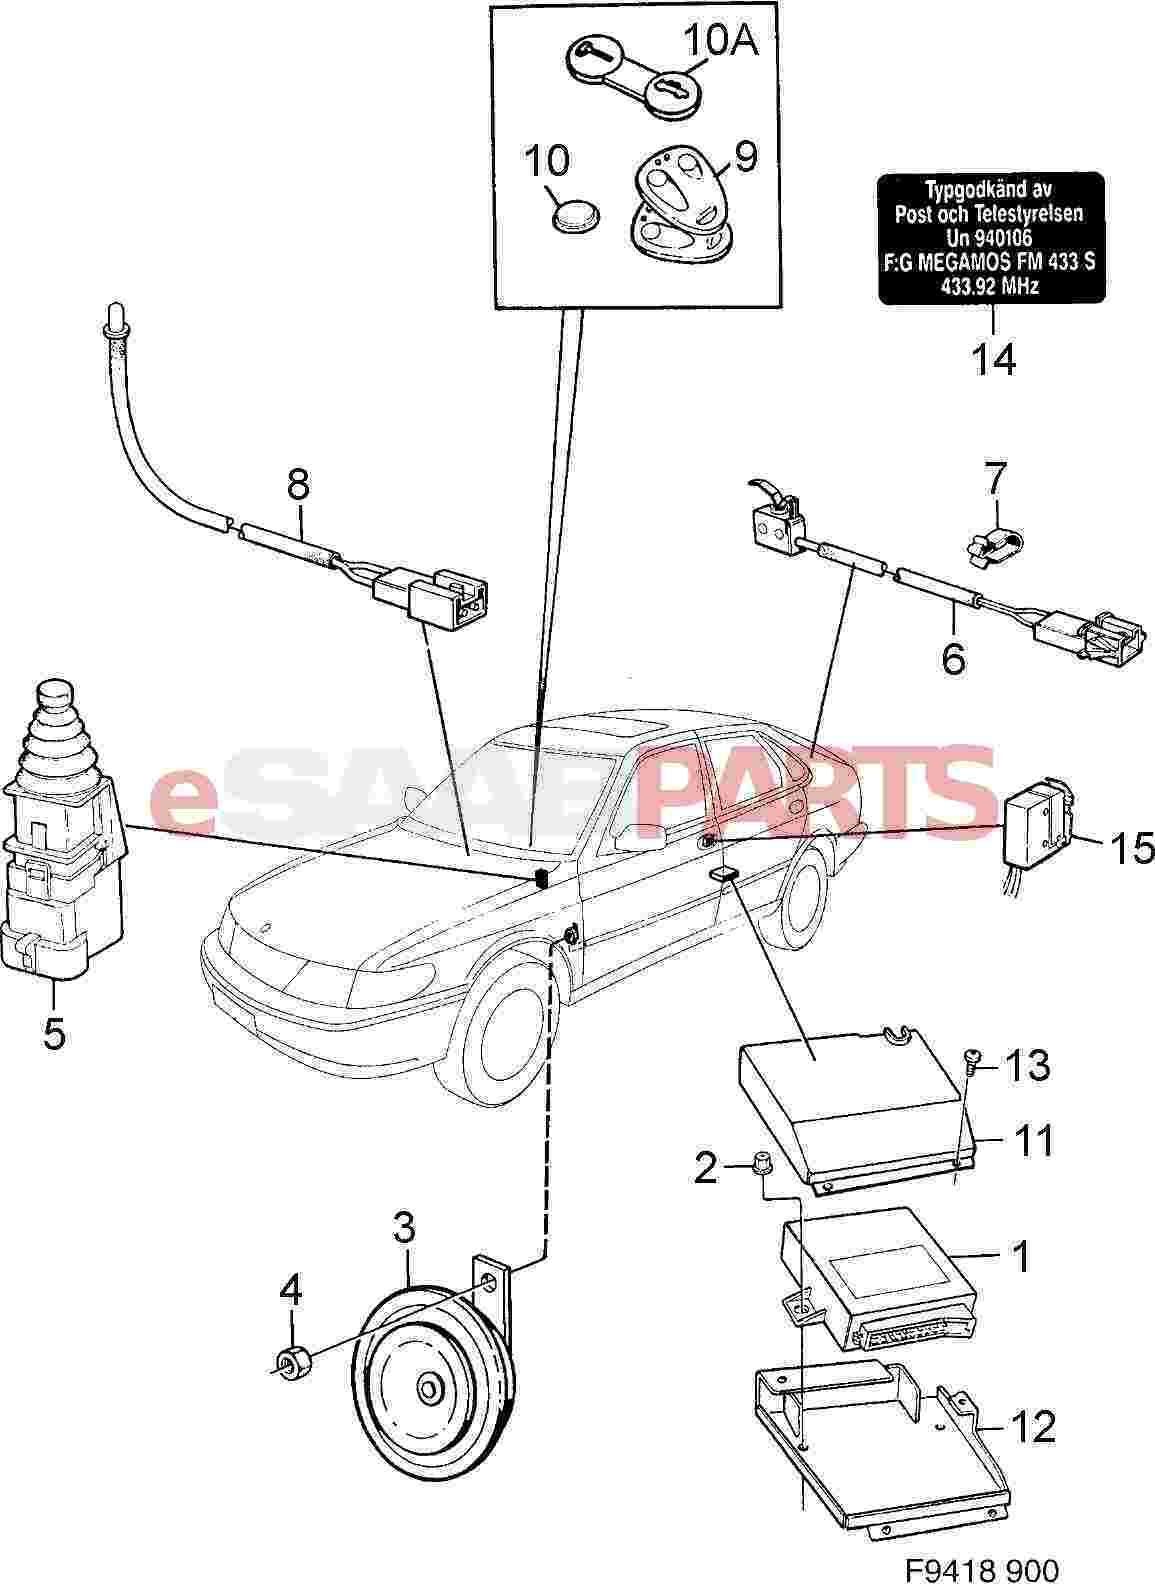 1997 saab 9000 engine diagram 1997 buick regal engine